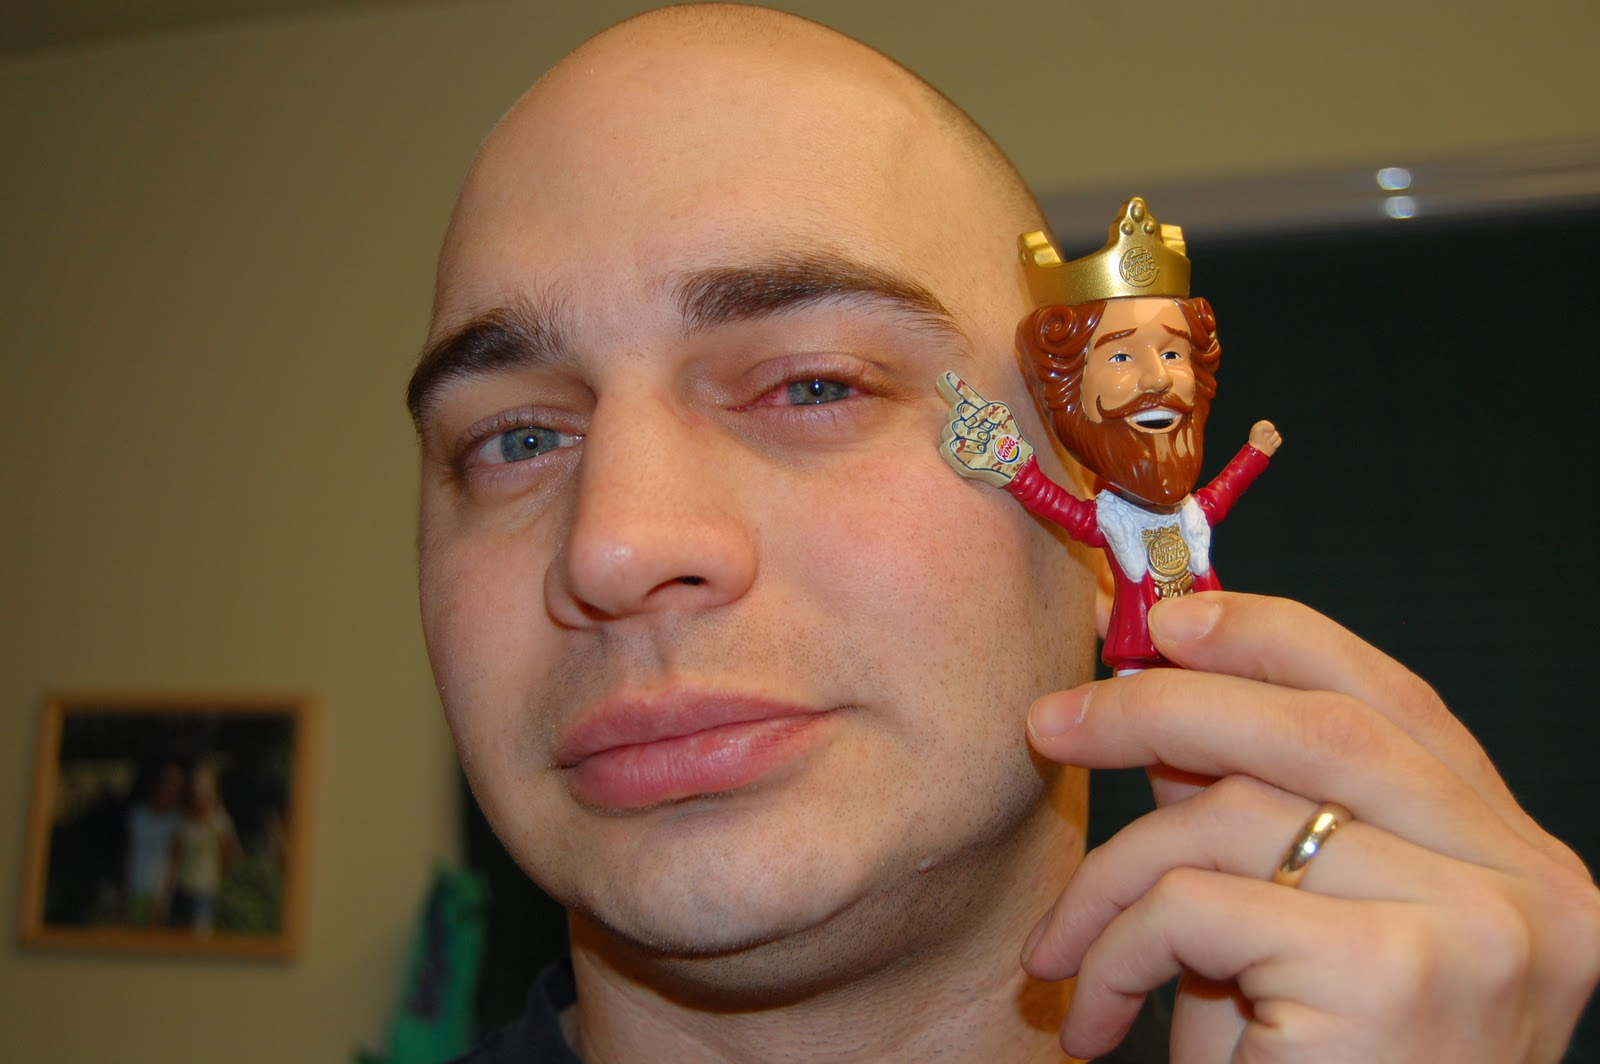 Cro & The King: The King and Pink Eye - photo#15